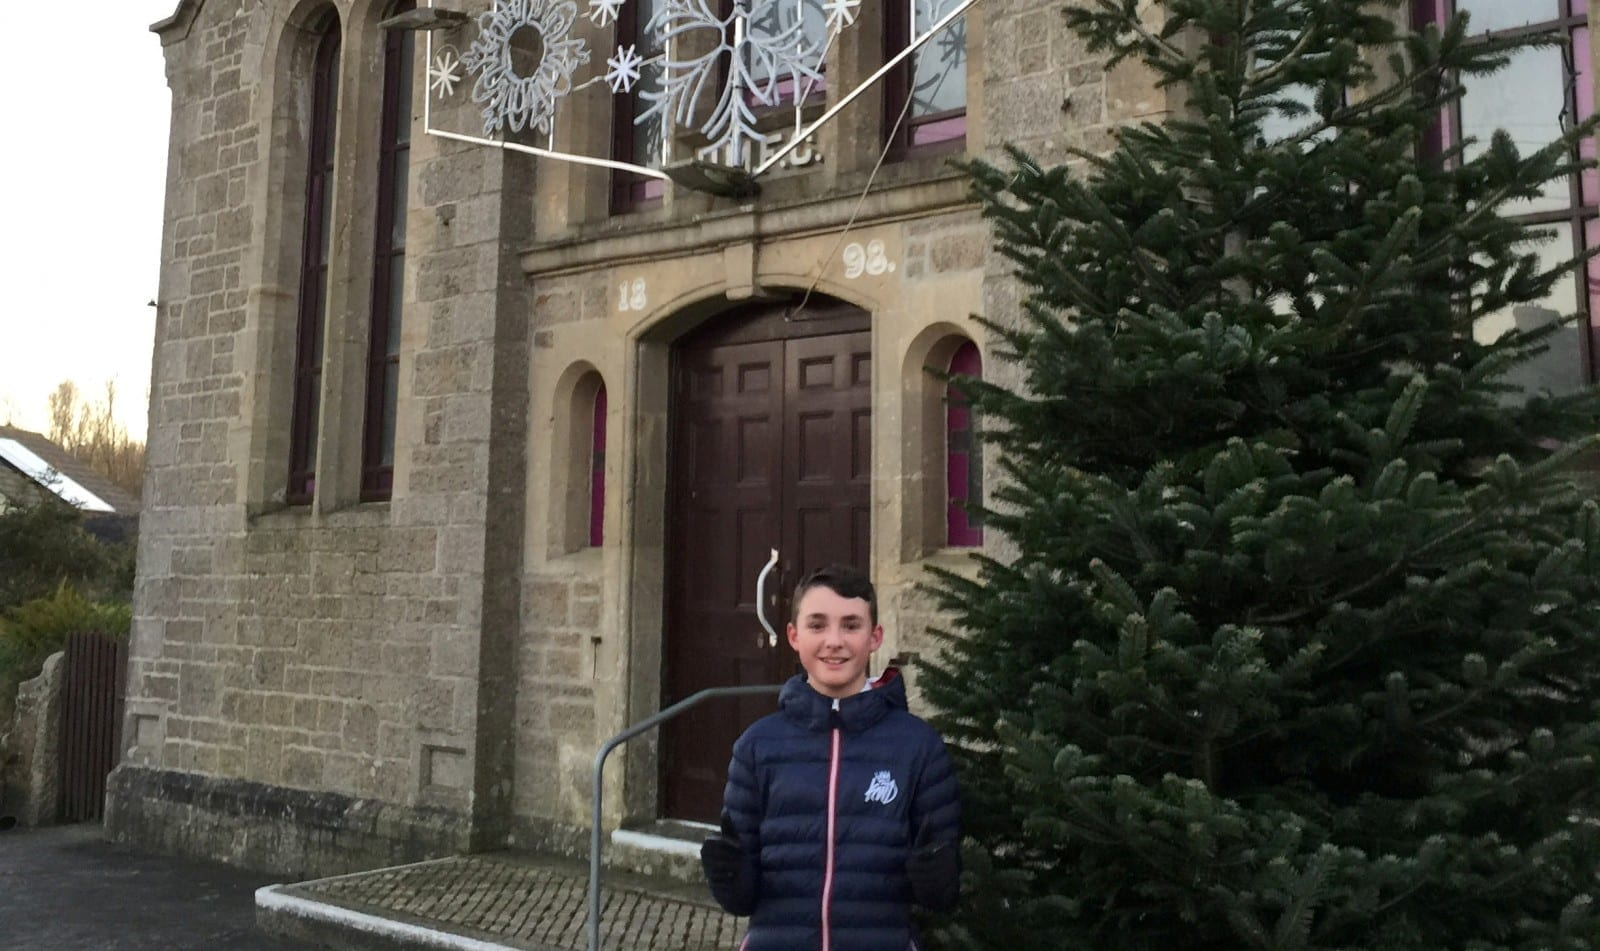 'I Wanted Our Village To Stand Out' – Cash-Strapped Village Which Couldn't Afford Christmas Decorations Gets Massive Tree And Lights – Thanks To Fundraising By Local 13-Year-Old